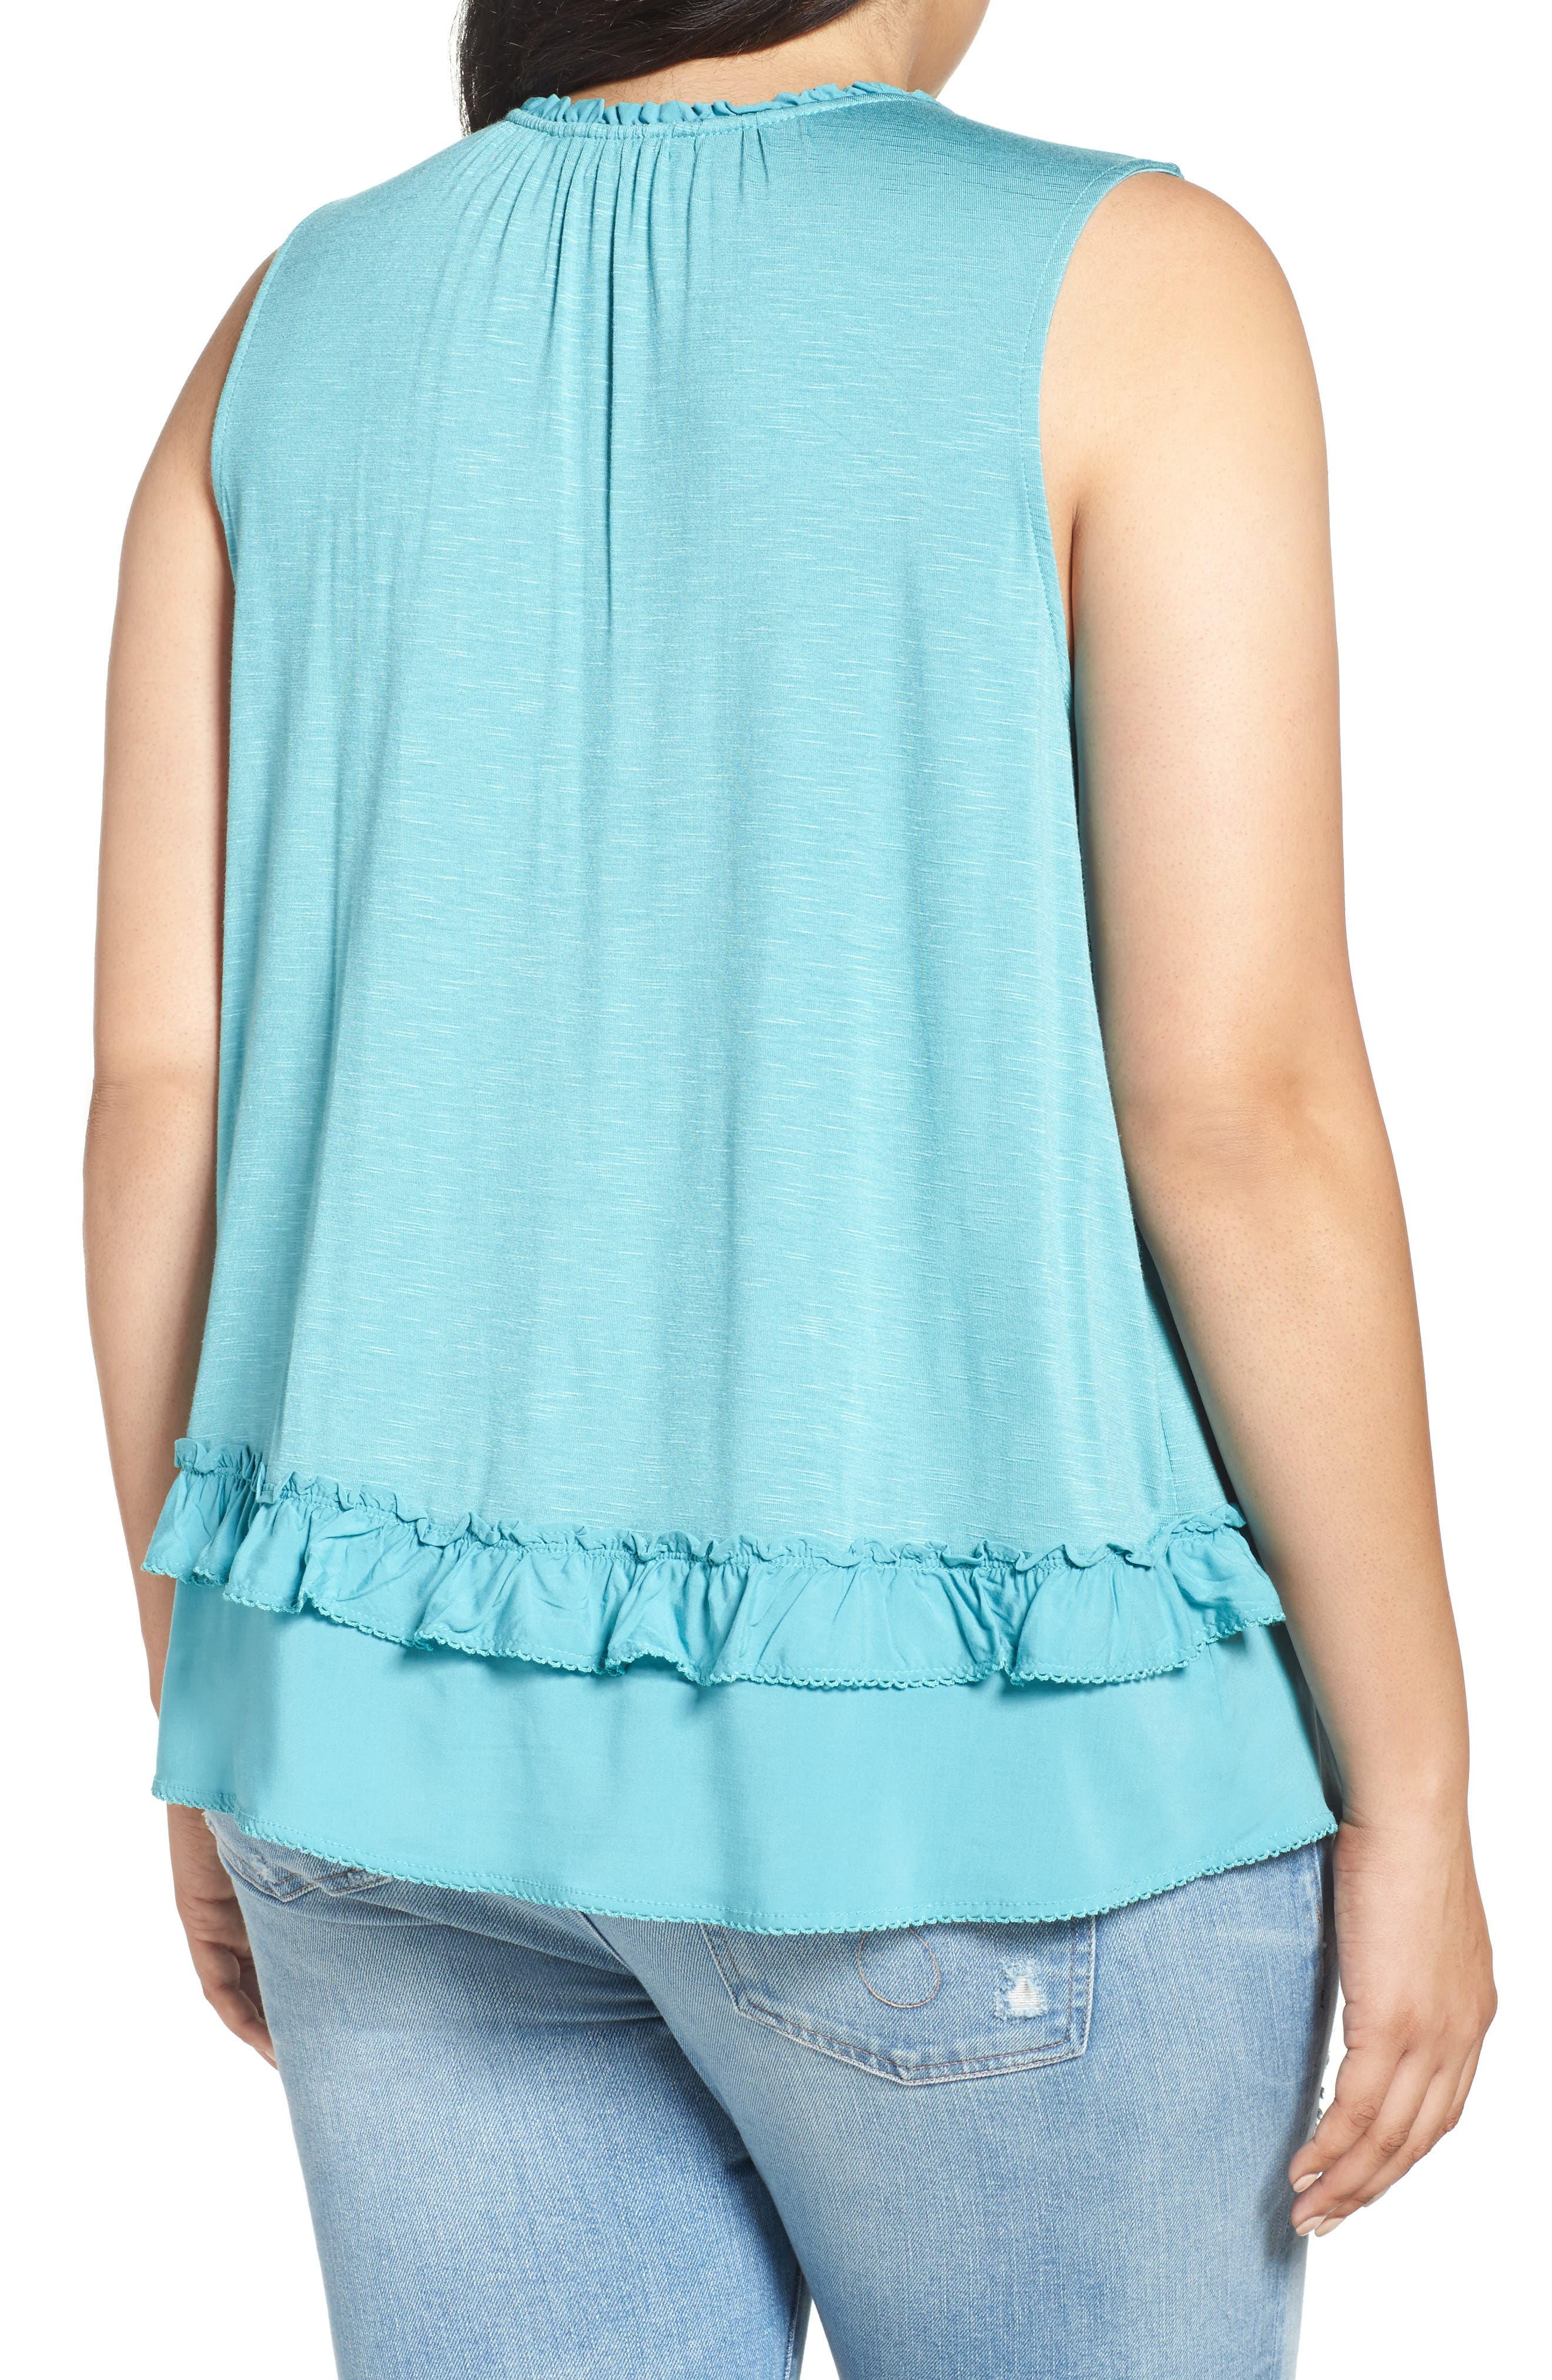 Alternate Image 2  - Democracy Ruffle Trim Tie Neck Top (Plus Size)